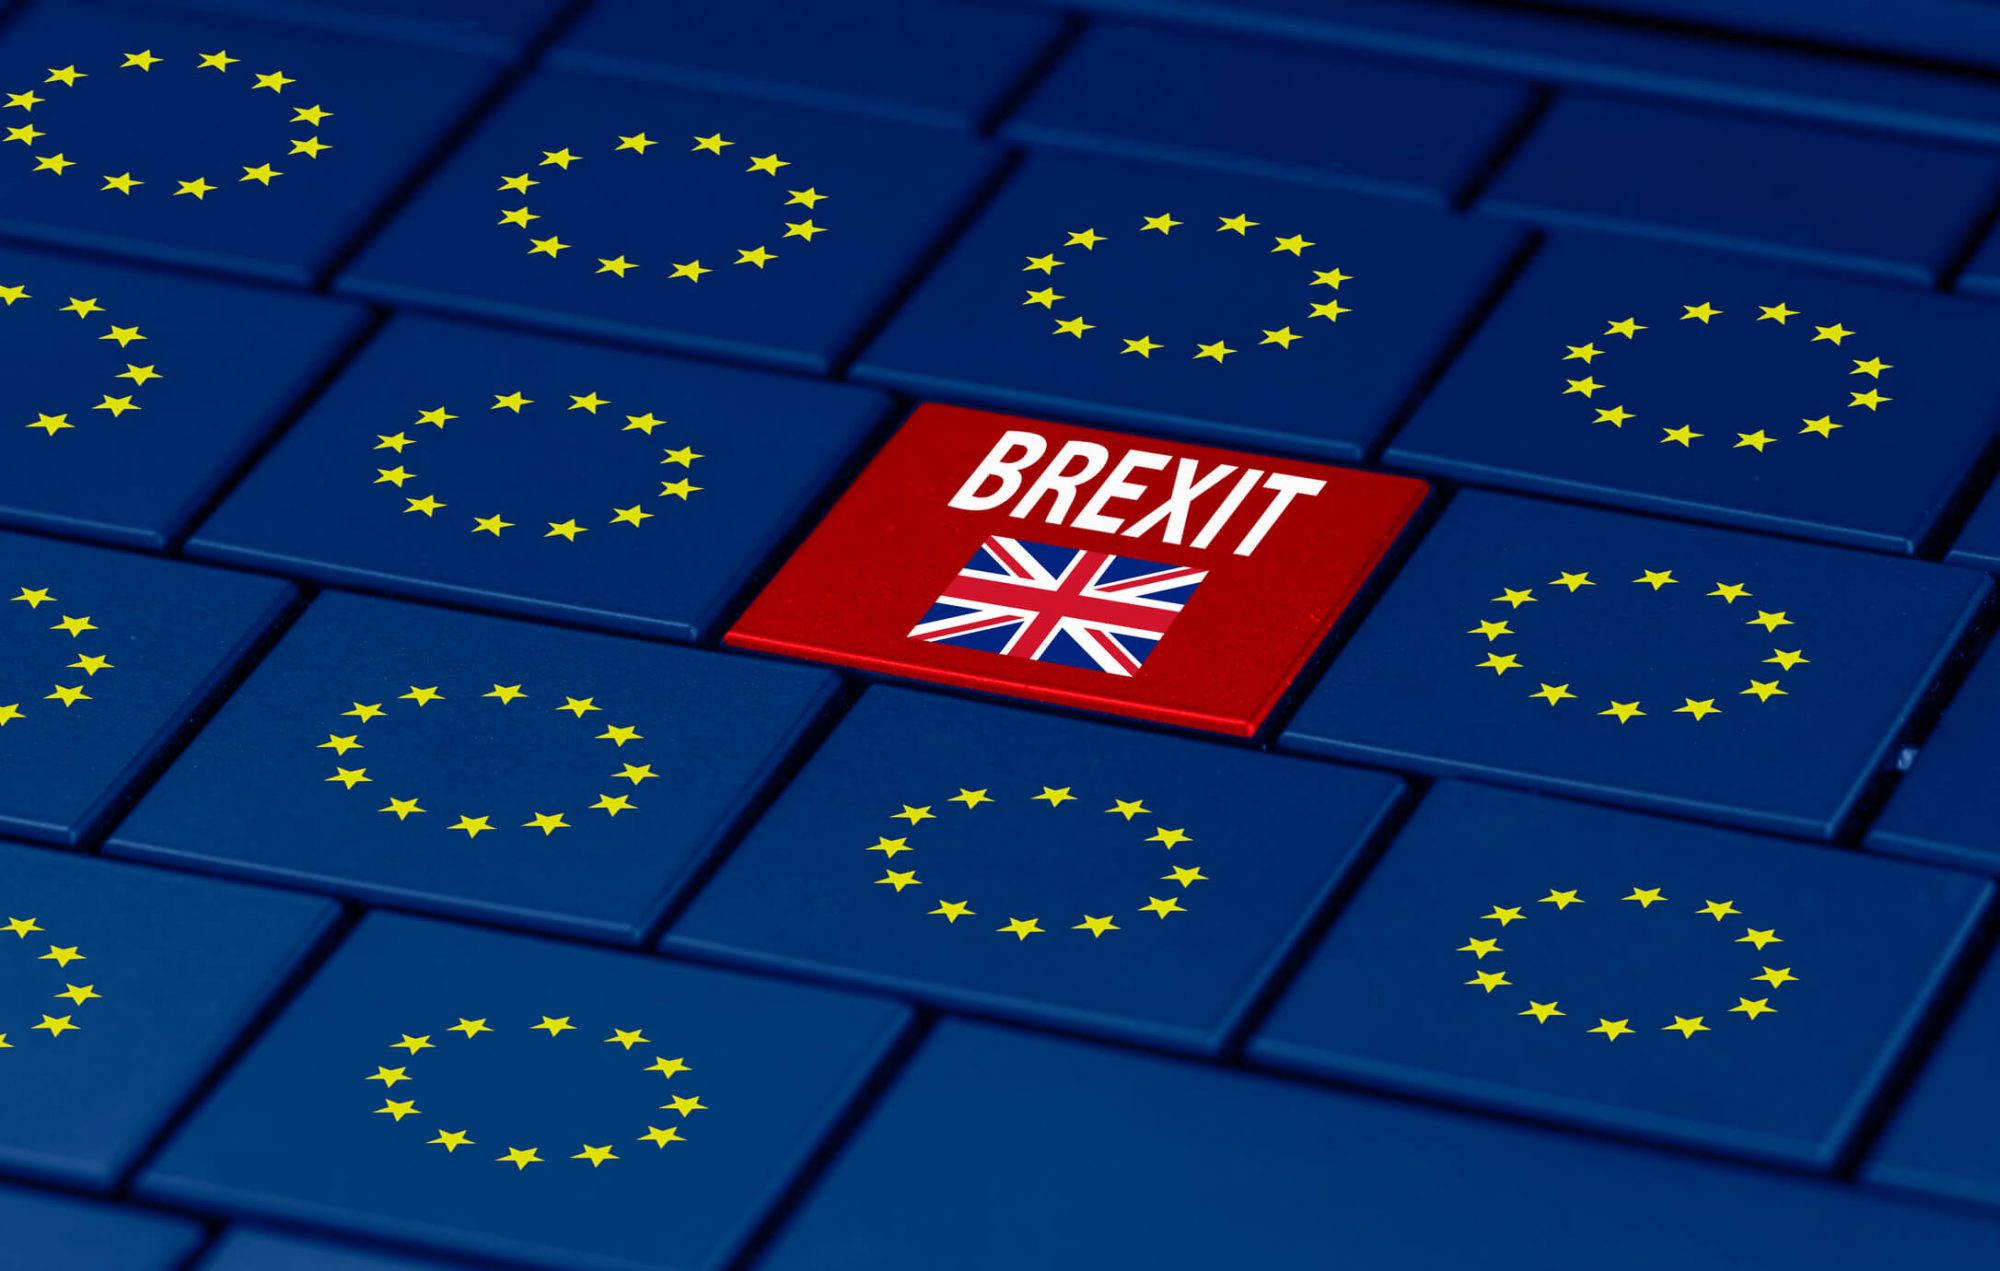 Keyboard showing Brexit image